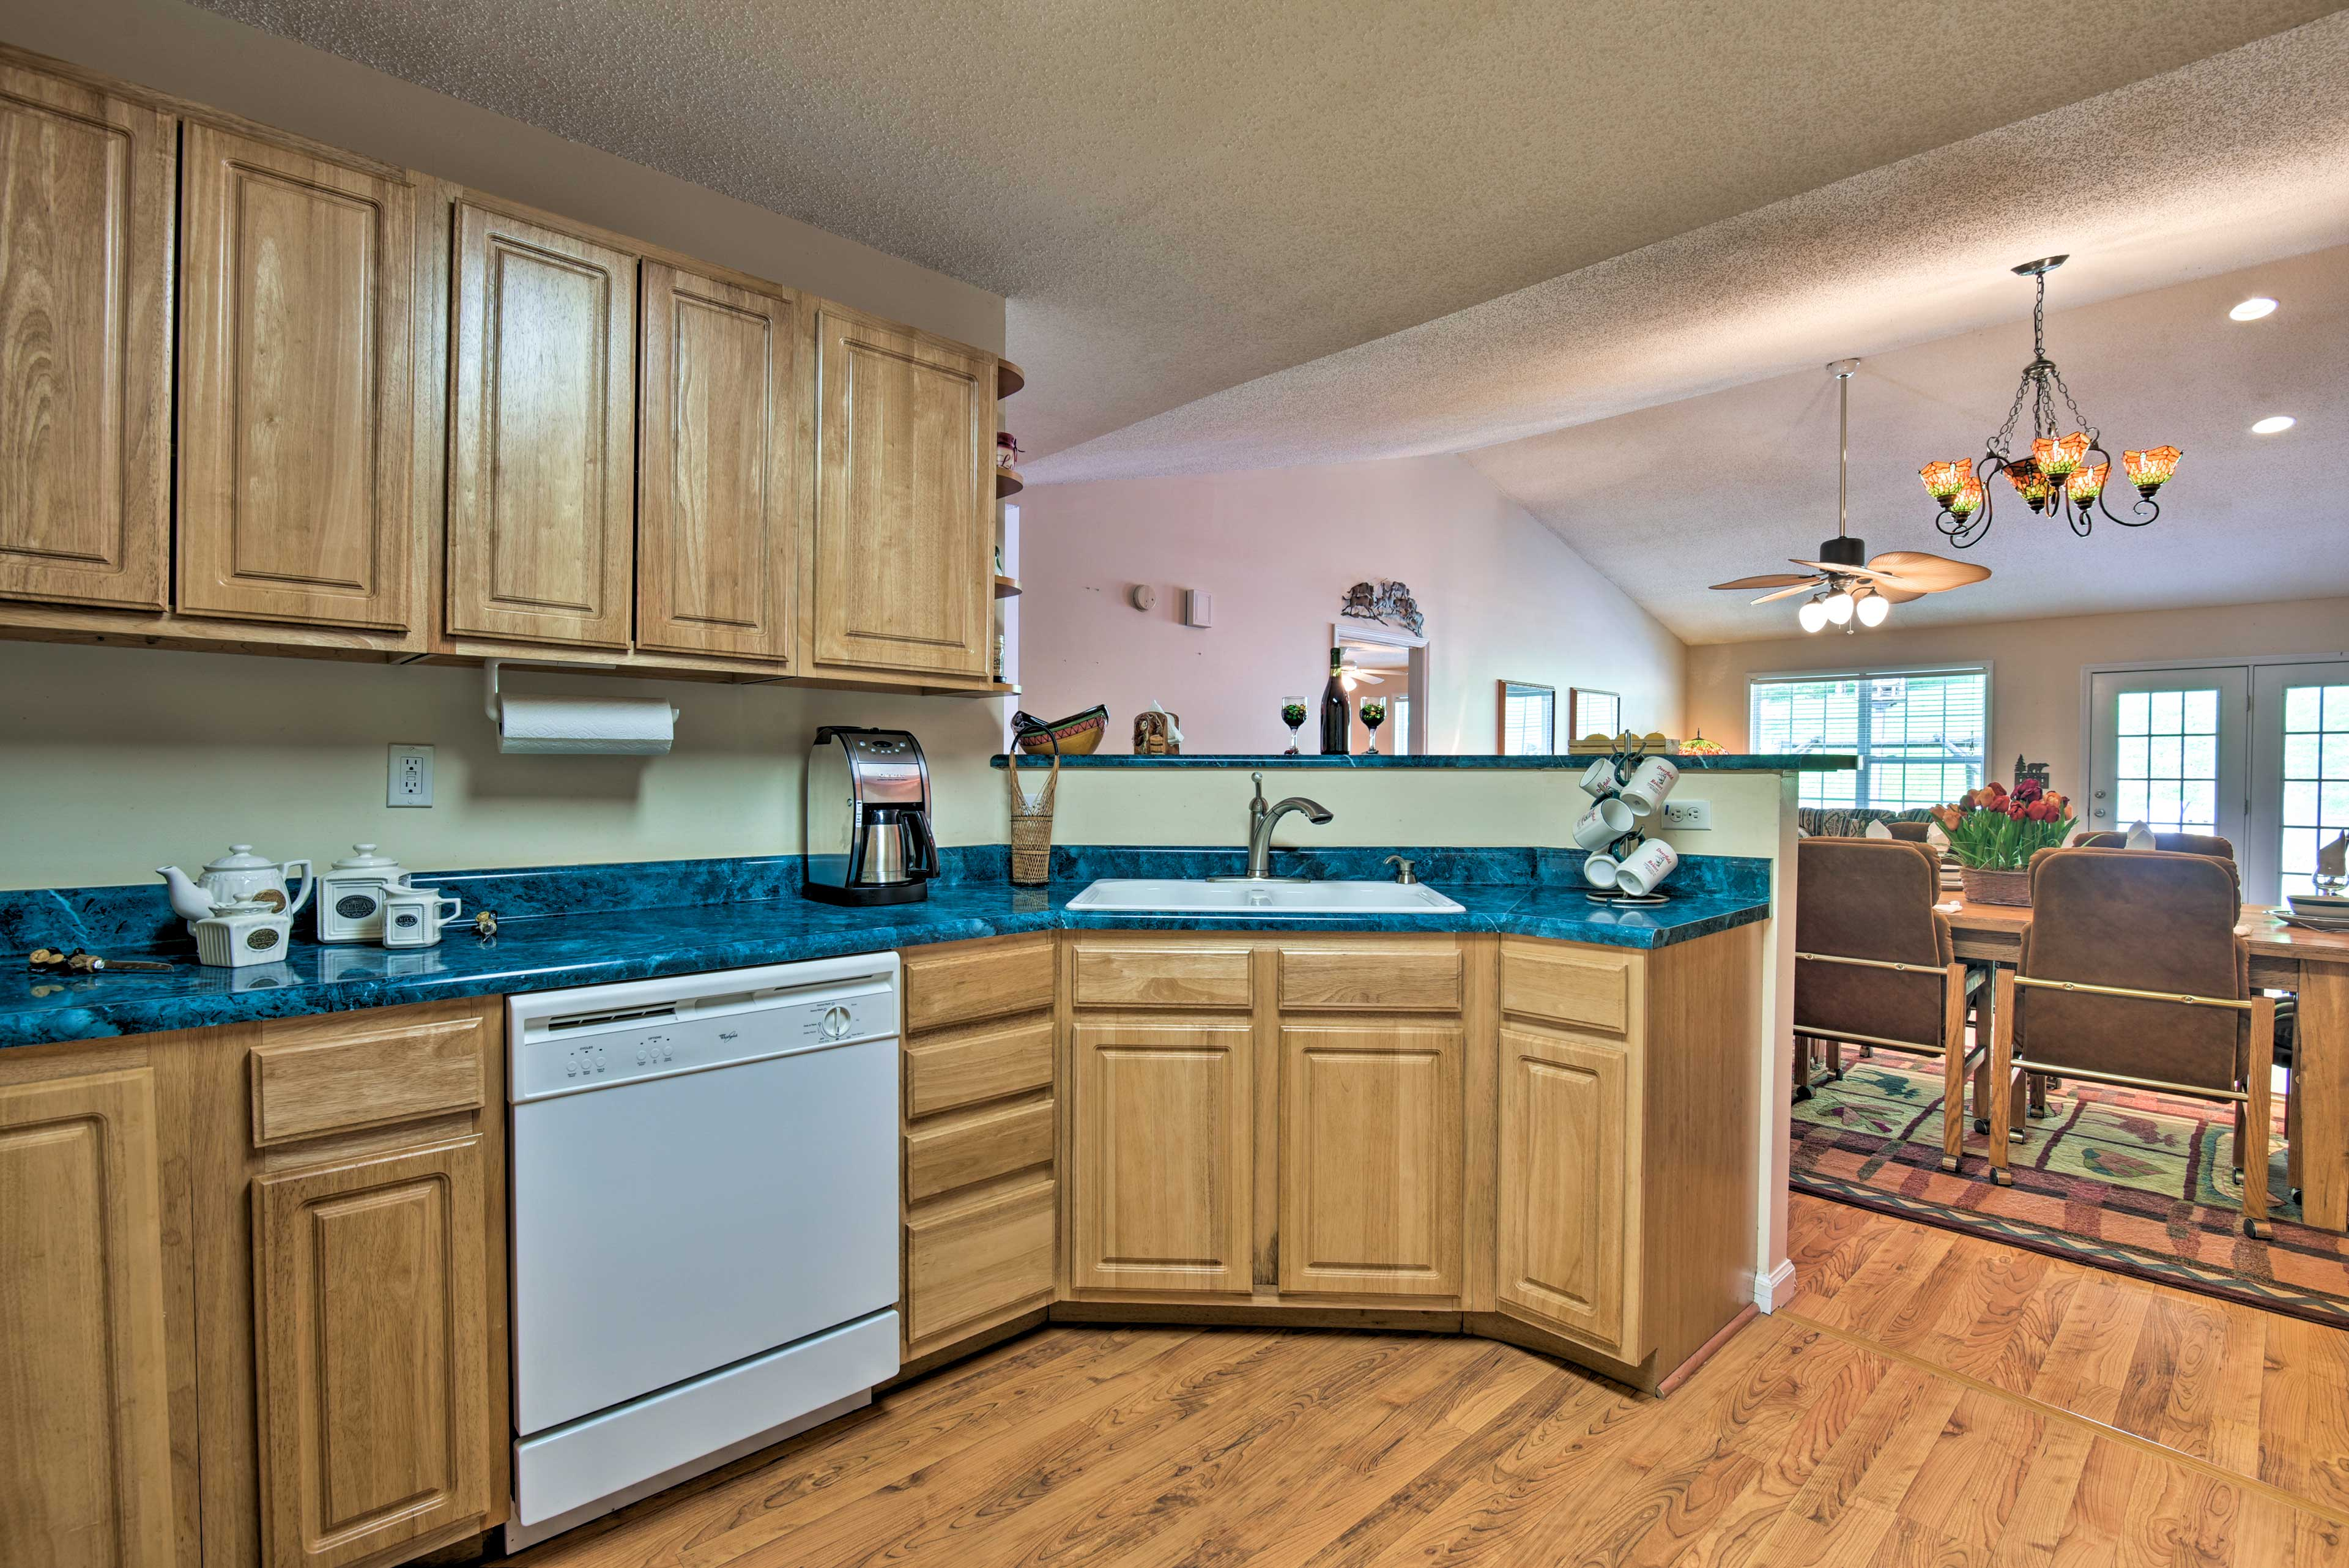 Prepare your signature dish on the expansive countertops.